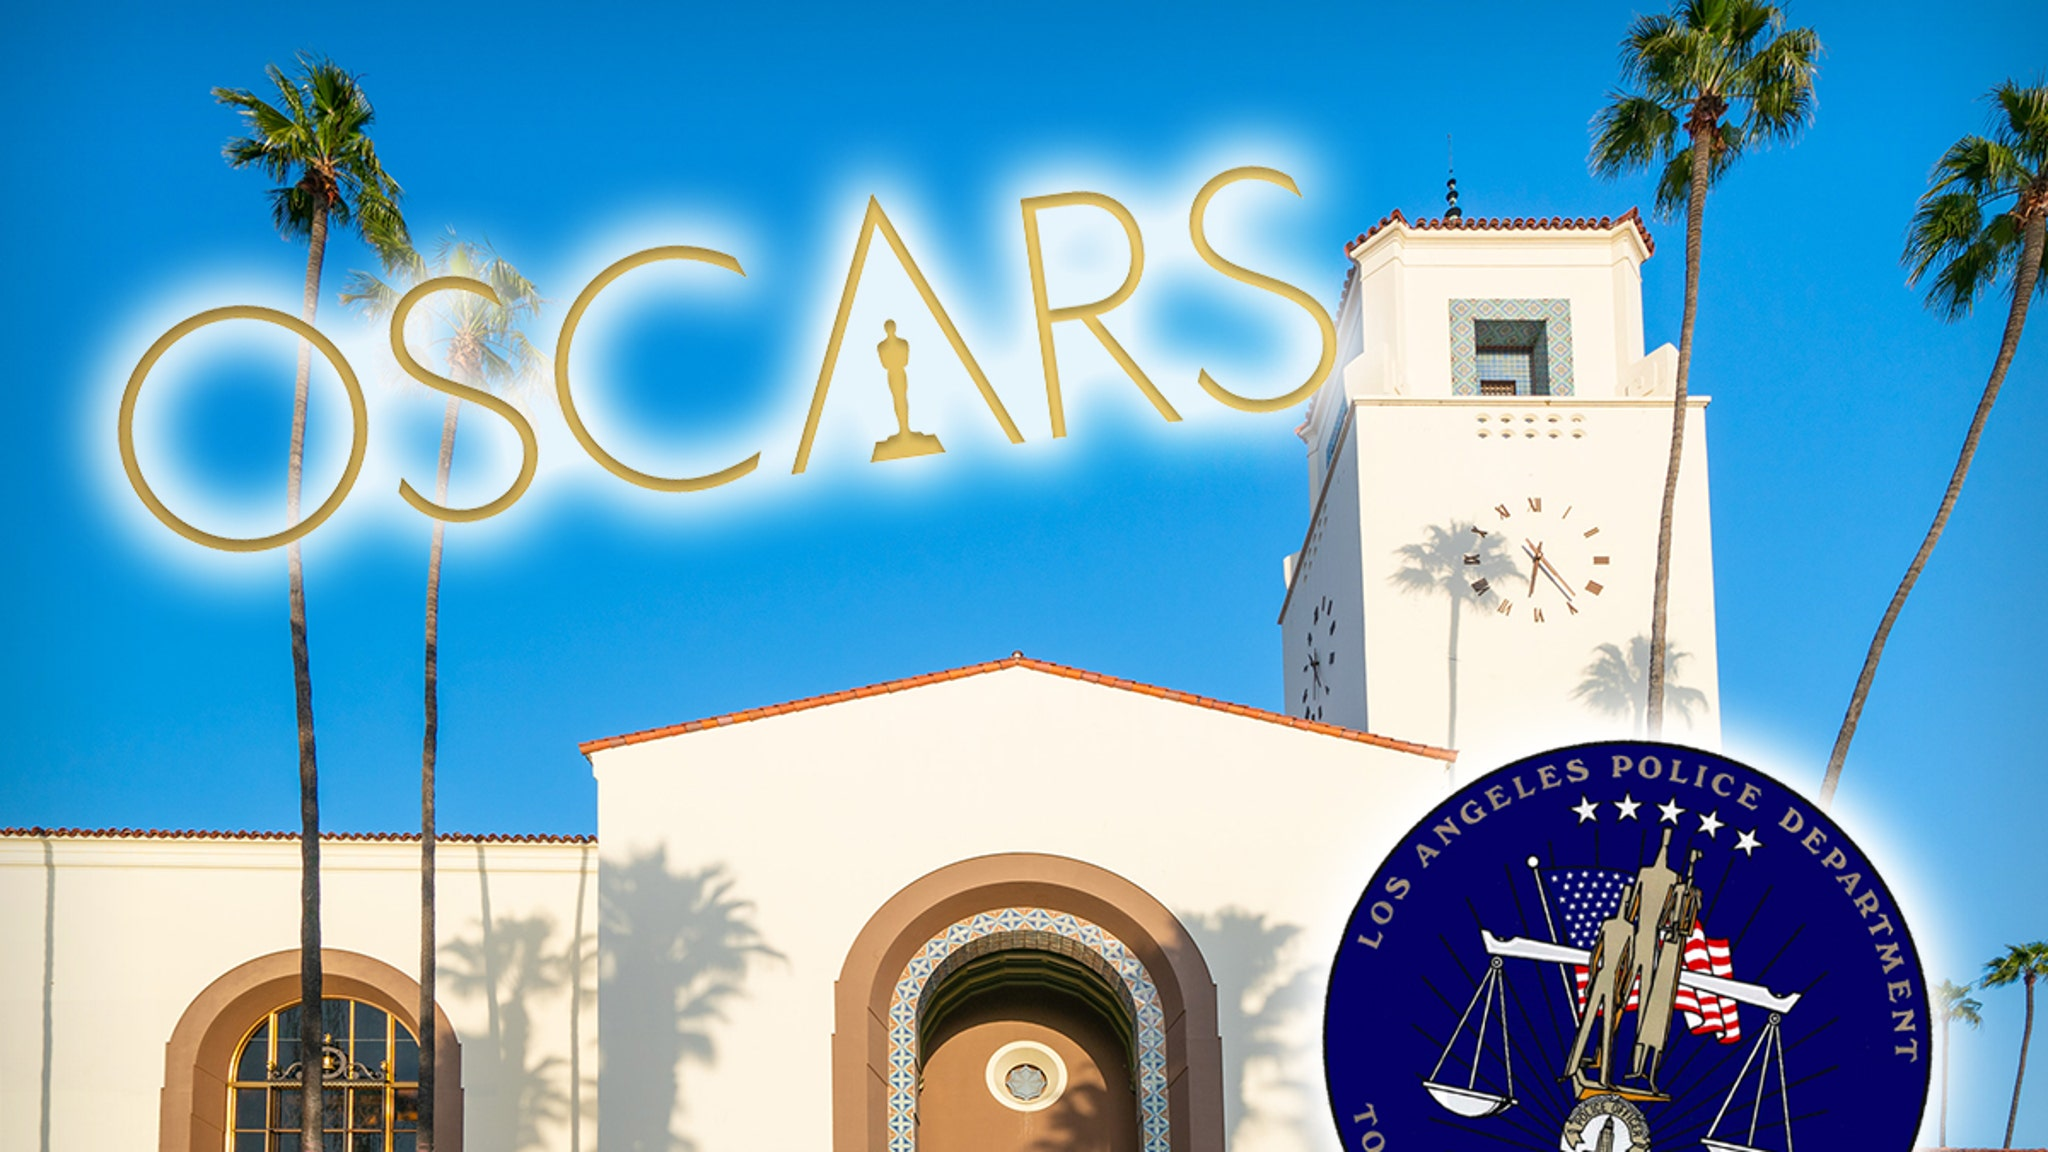 Oscars' L.A. Train Station Location Sees Crew Members Getting Mugged thumbnail